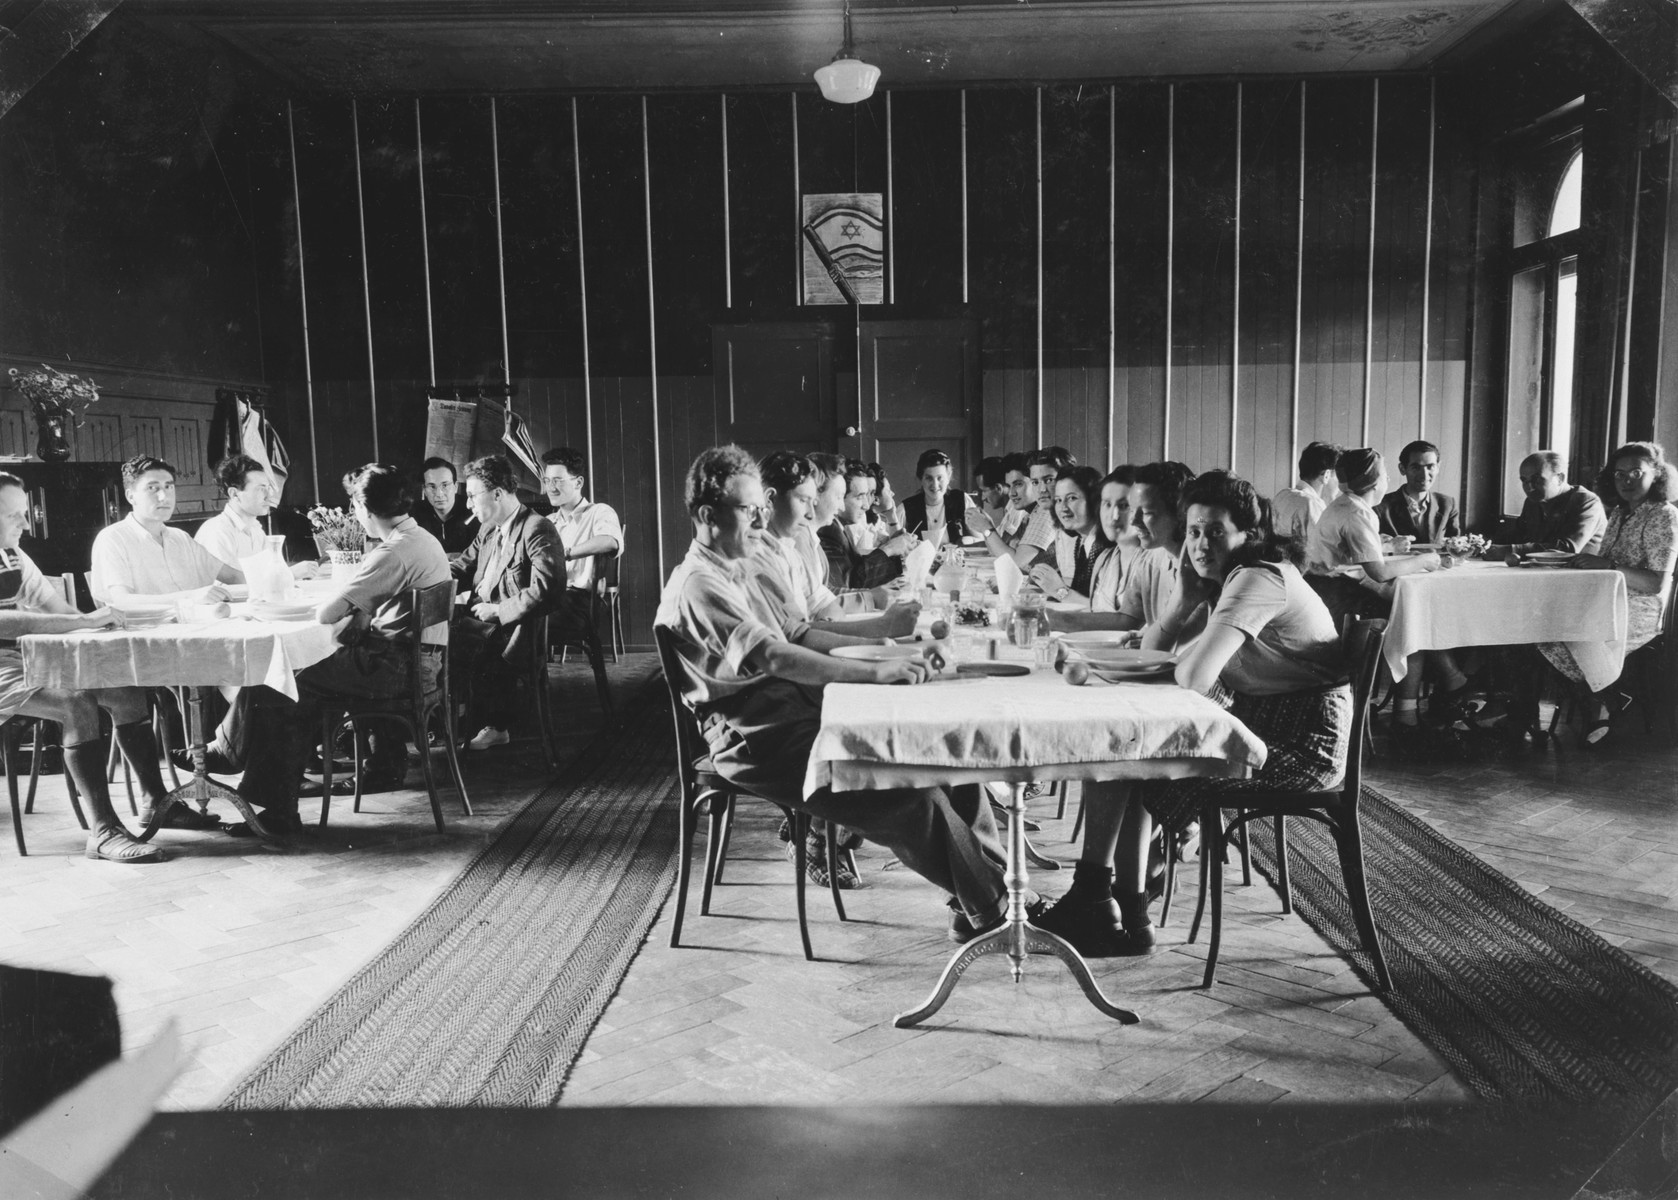 Young Zionists eat in the dining hall of a kibbutz hachshara in Loosdrecht.  Among those pictured is Letty Rudelsheim.